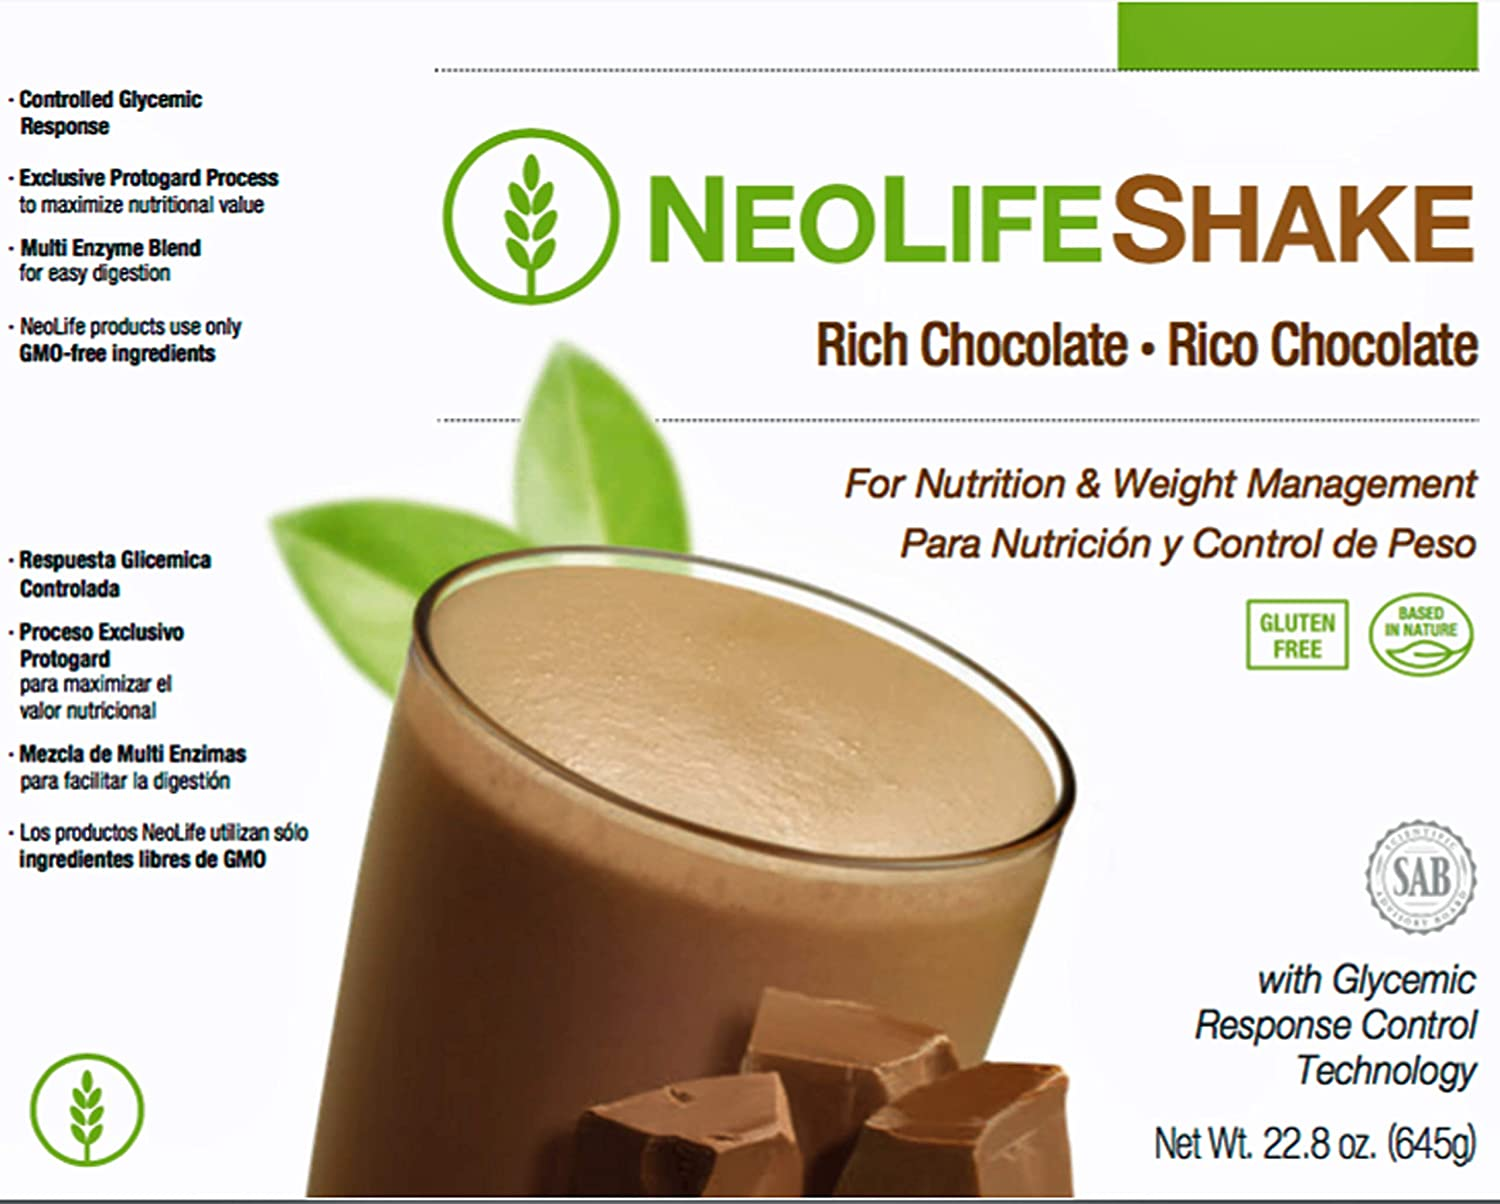 Amazon.com: NeoLife Shake Our Delicious and Convenient NeoLifeShake Helps Satisfy Hunger While Giving You Lasting Energy. (Shake Berries n Cream): Health ...